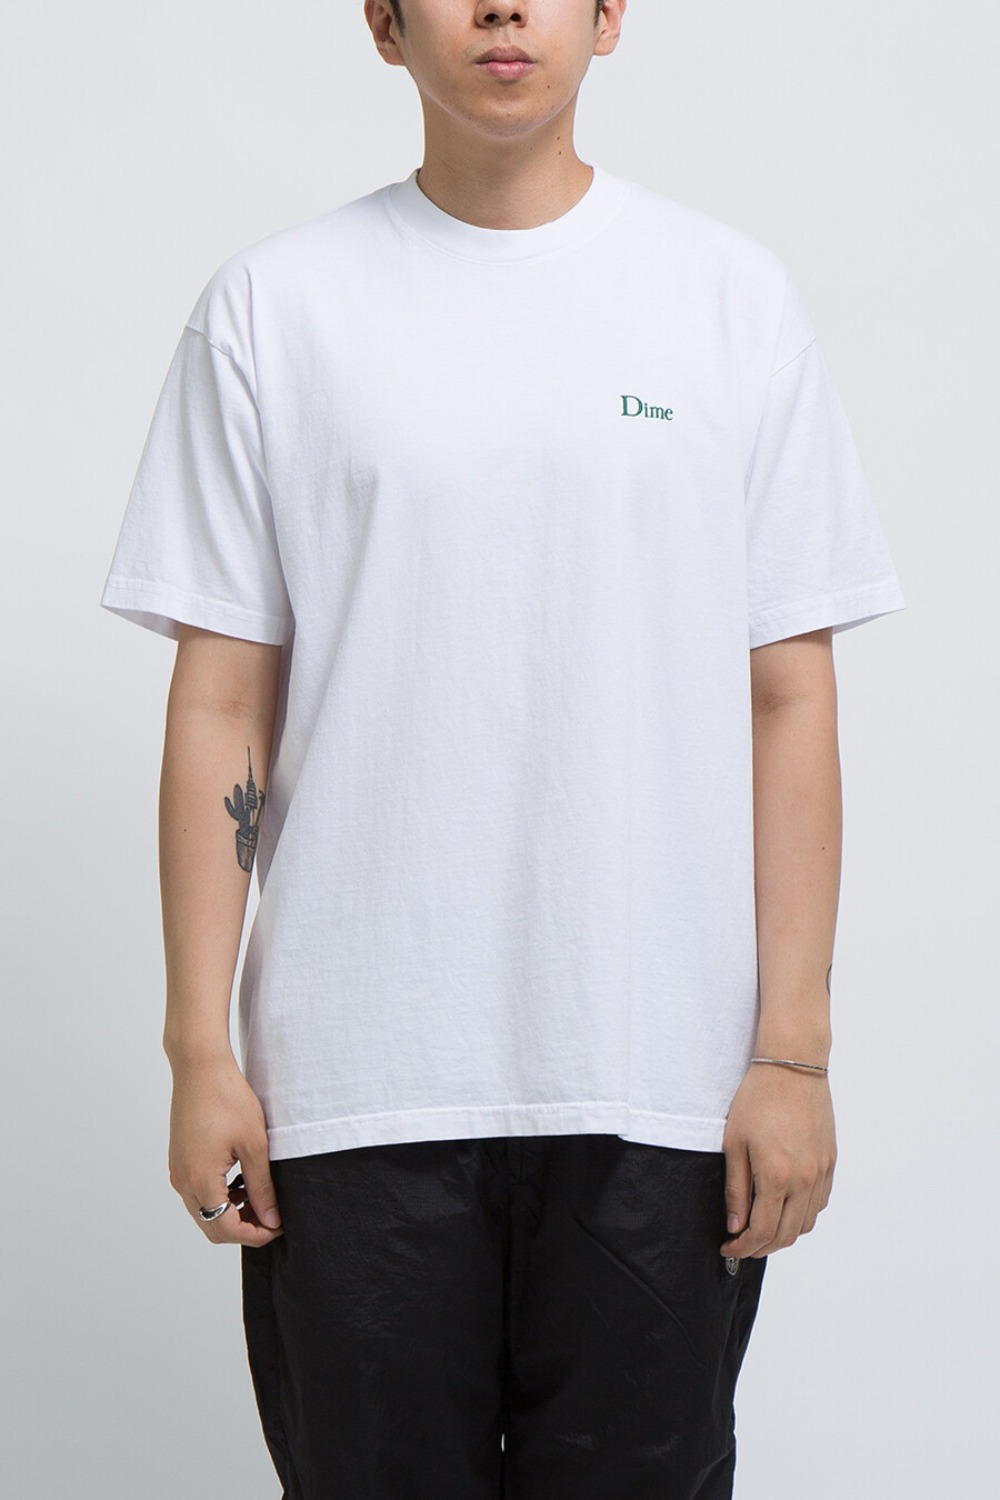 DIME CLASSIC EMBROIDERED T-SHIRT WITE